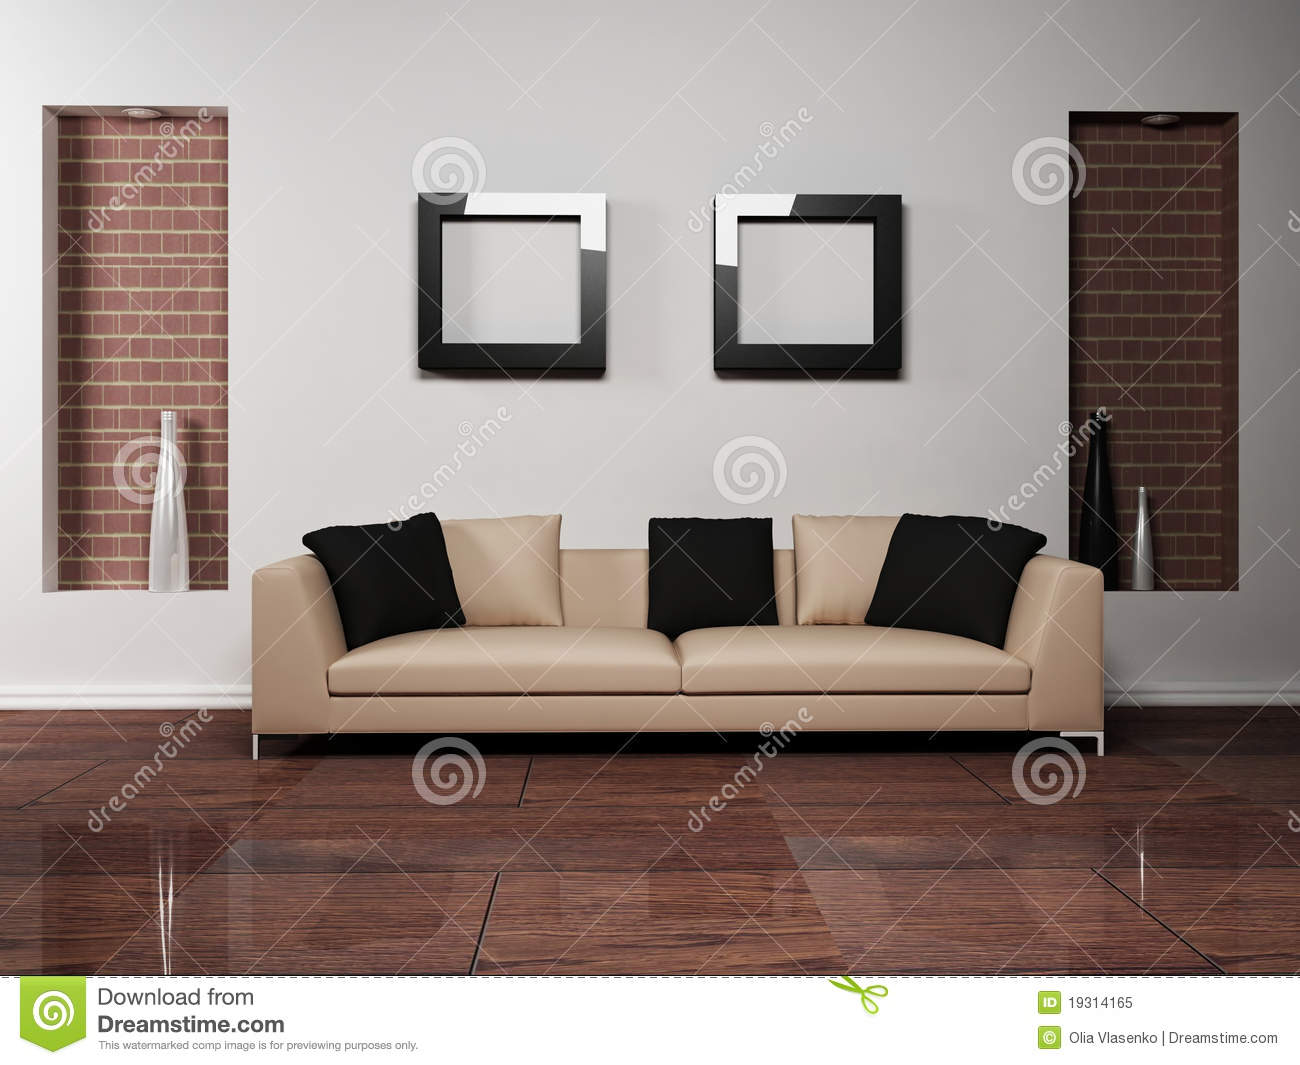 Modern interior design of living room with royalty free stock photo image 19314165 Free interior design